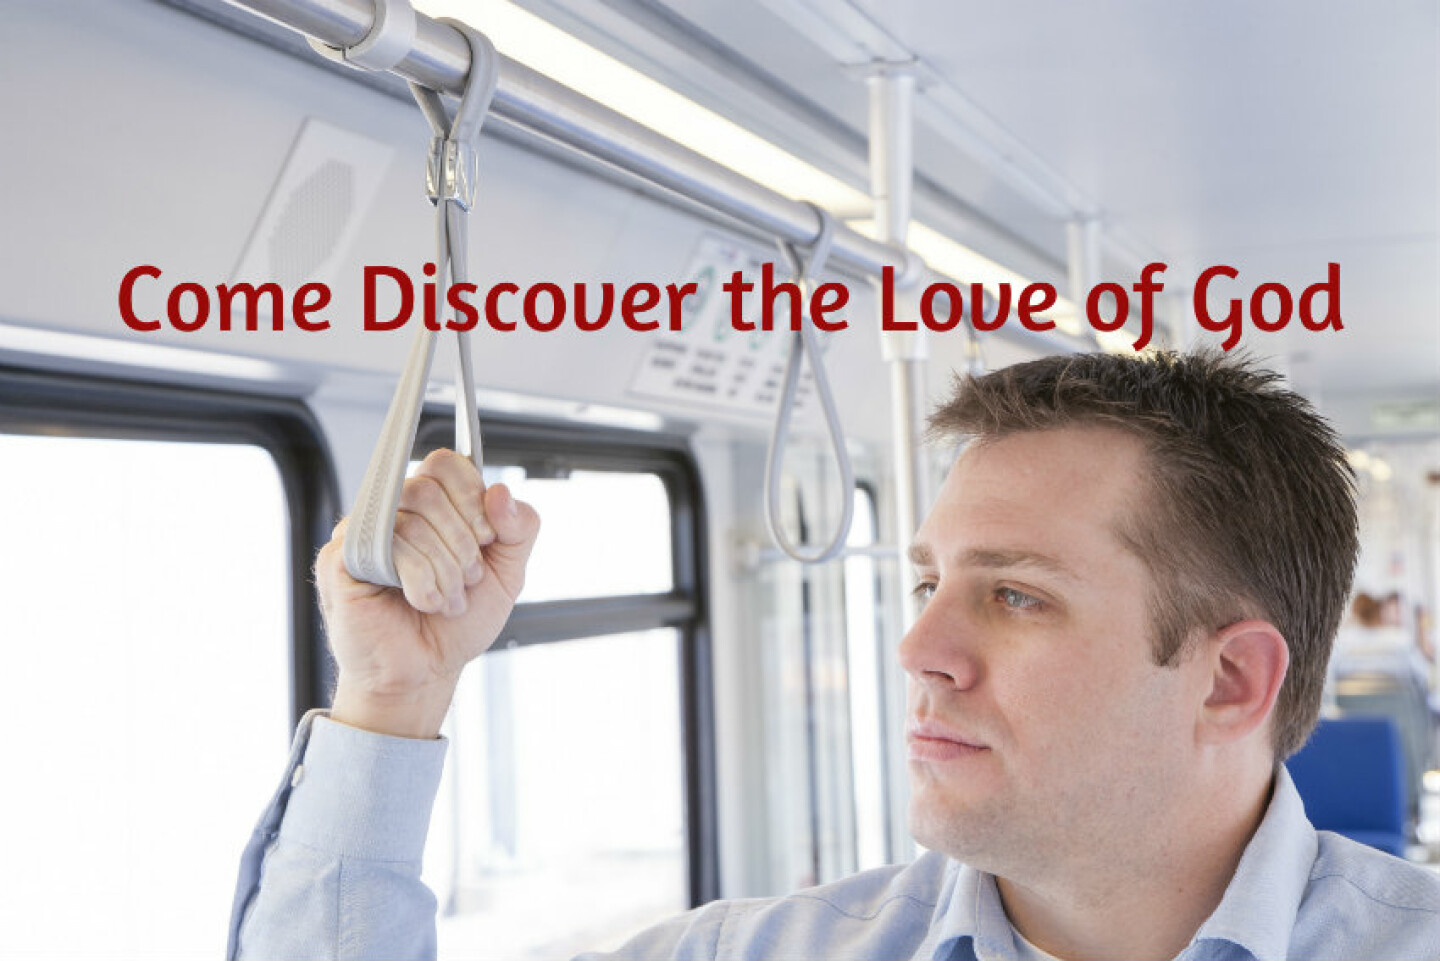 Come Discover the Love of God